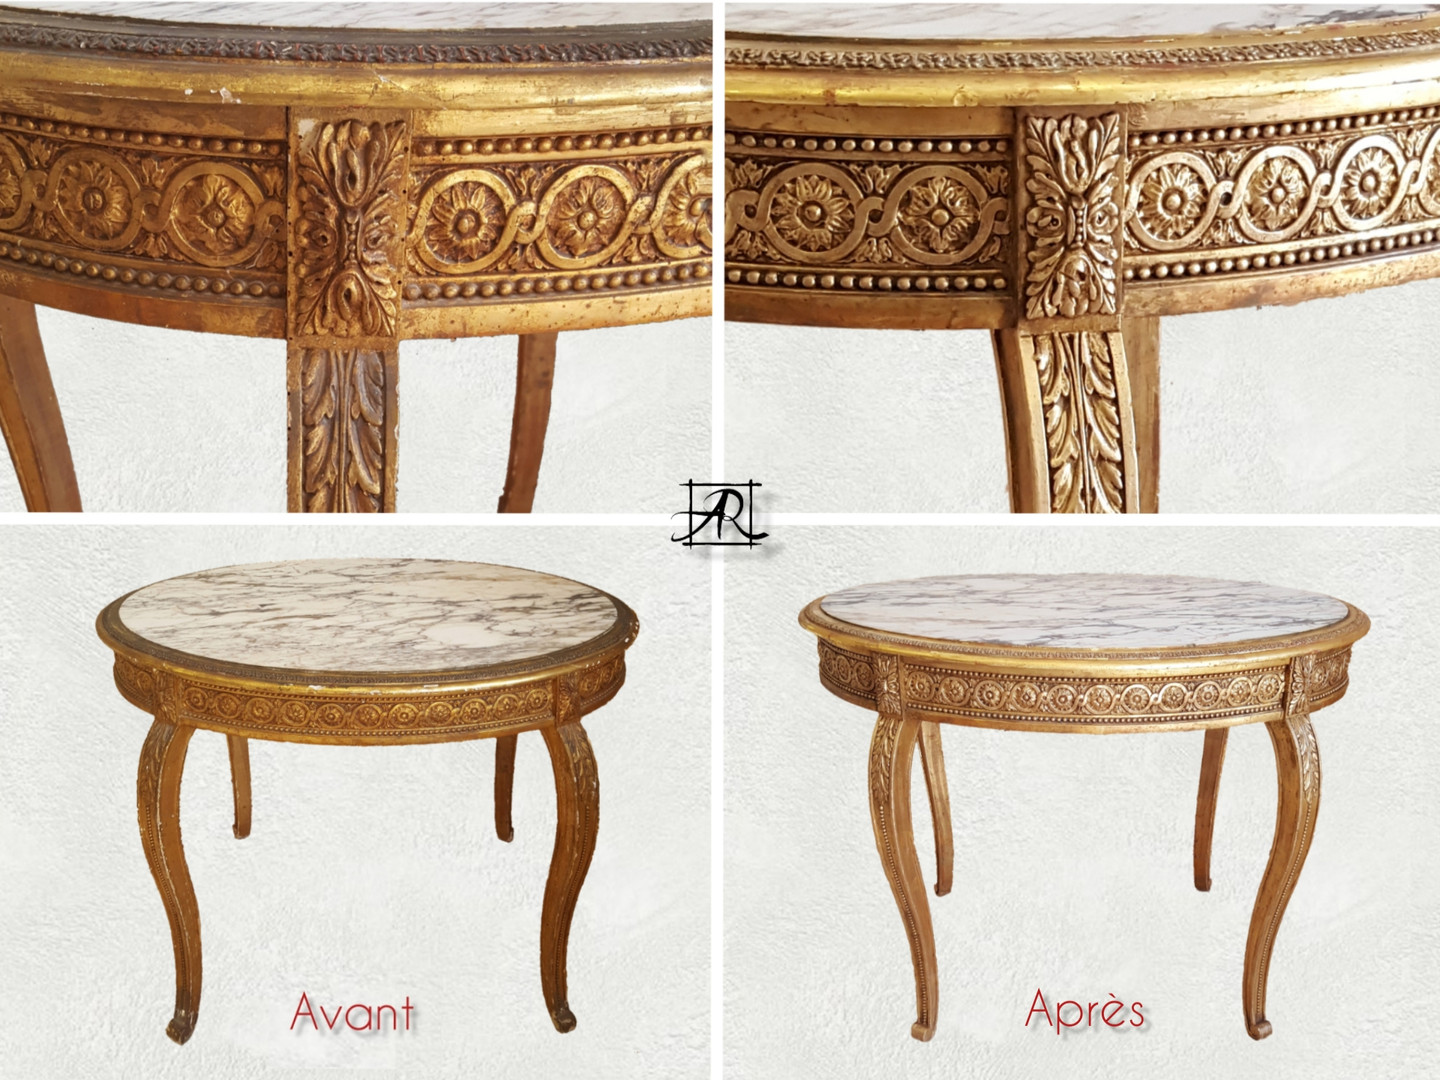 restauration table xixeme.jpg